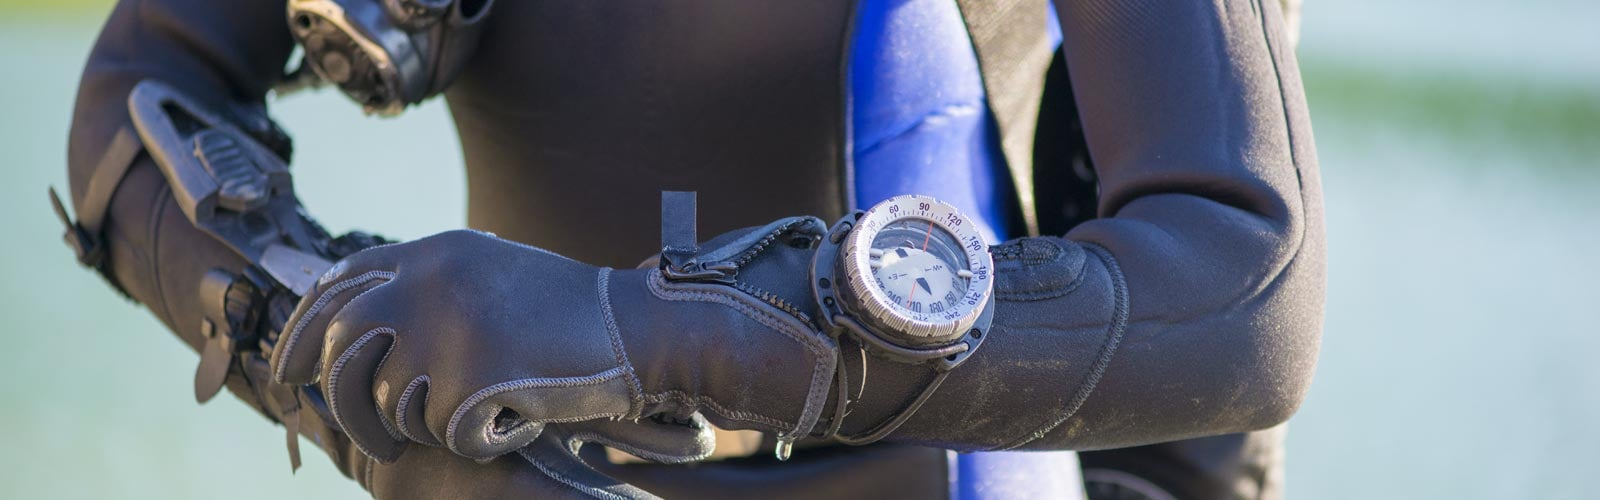 Wetsuits Accessories